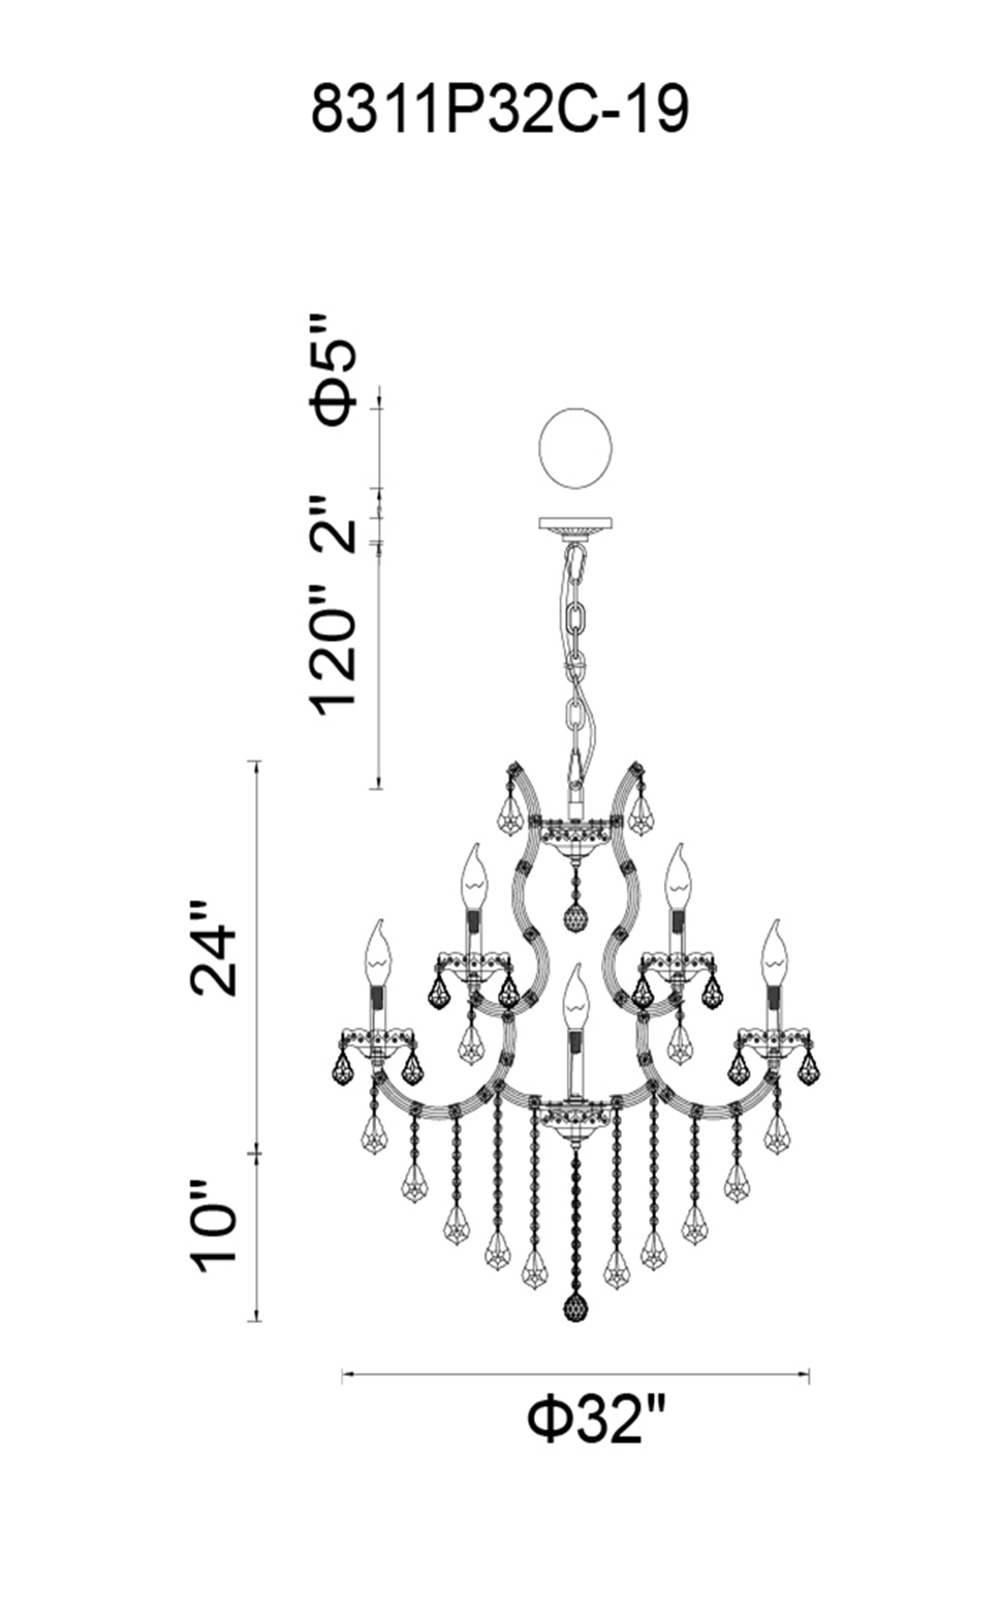 CWI Lighting Maria Theresa 19 Light Up Chandelier With Chrome Finish Model: 8311P32C-19 (CLEAR) Line Drawing